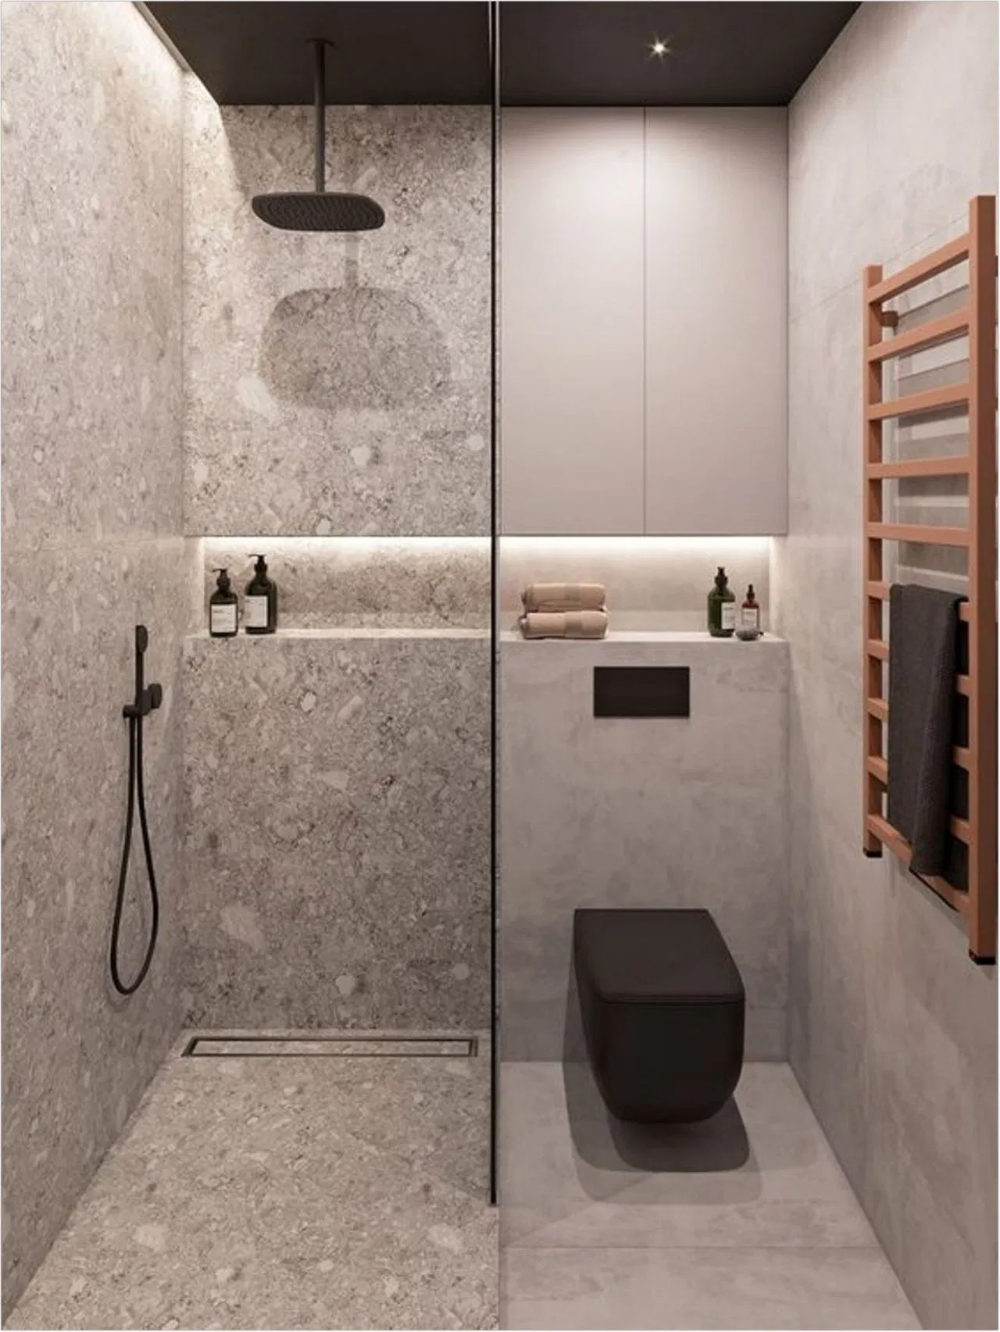 small bathroom, grey marble floor and wall in shower area, grey floor and wall in toilet area, black toilet, wooden rack